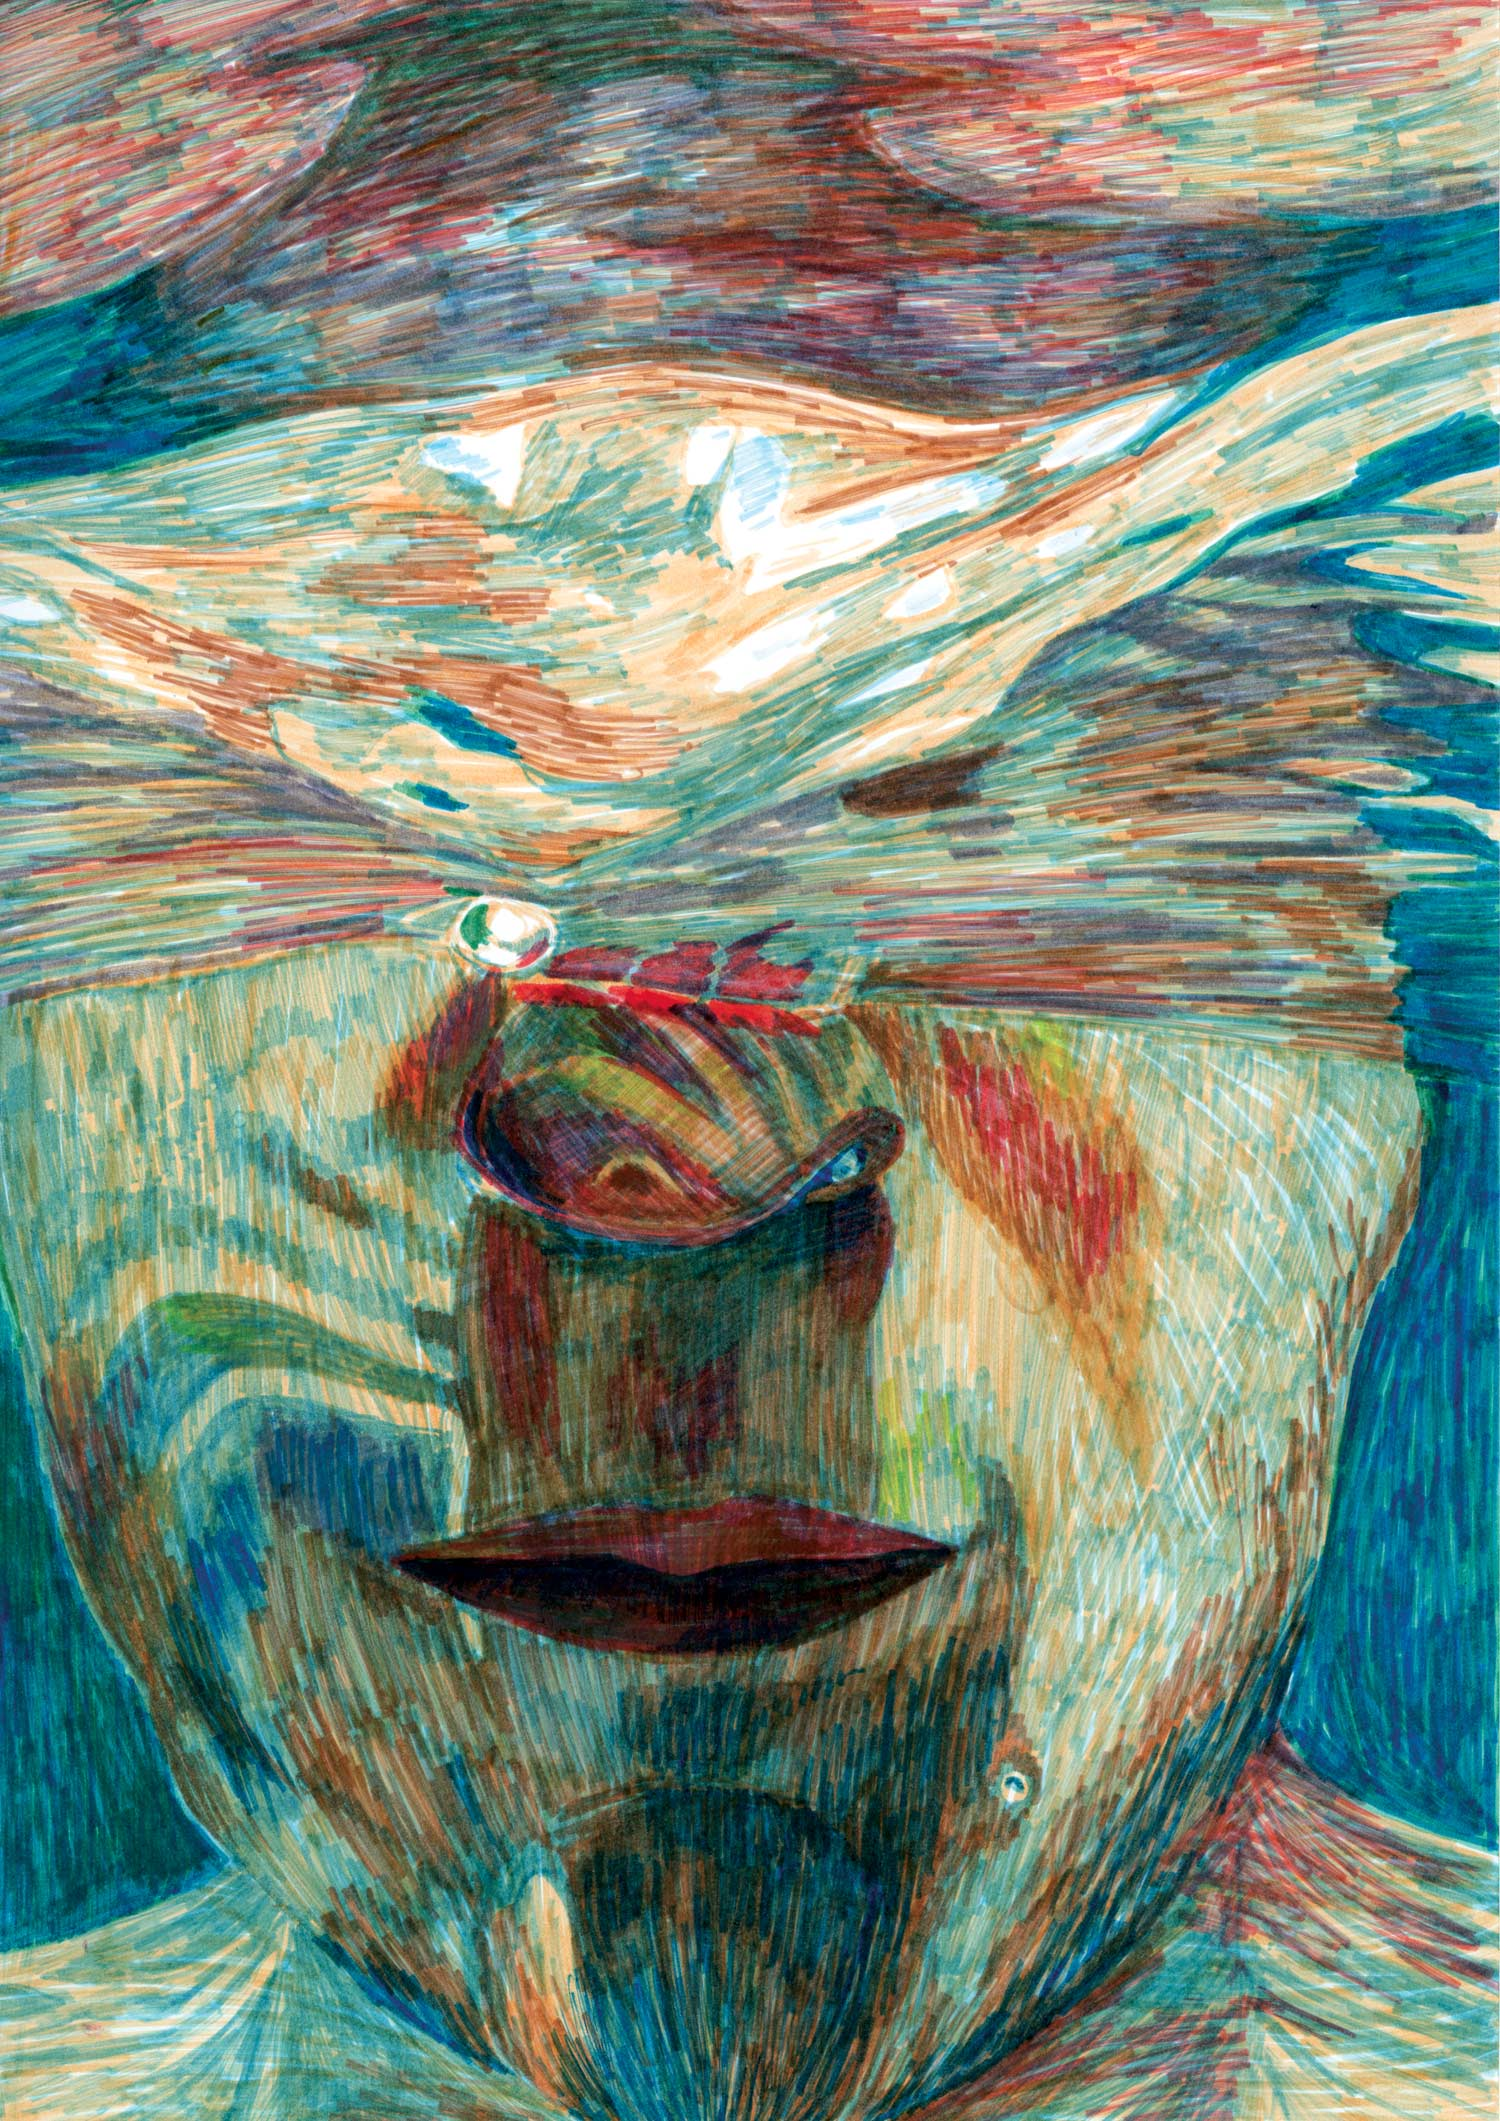 eau_mer_reflet_surface_visage_illustration_feutre_molesti